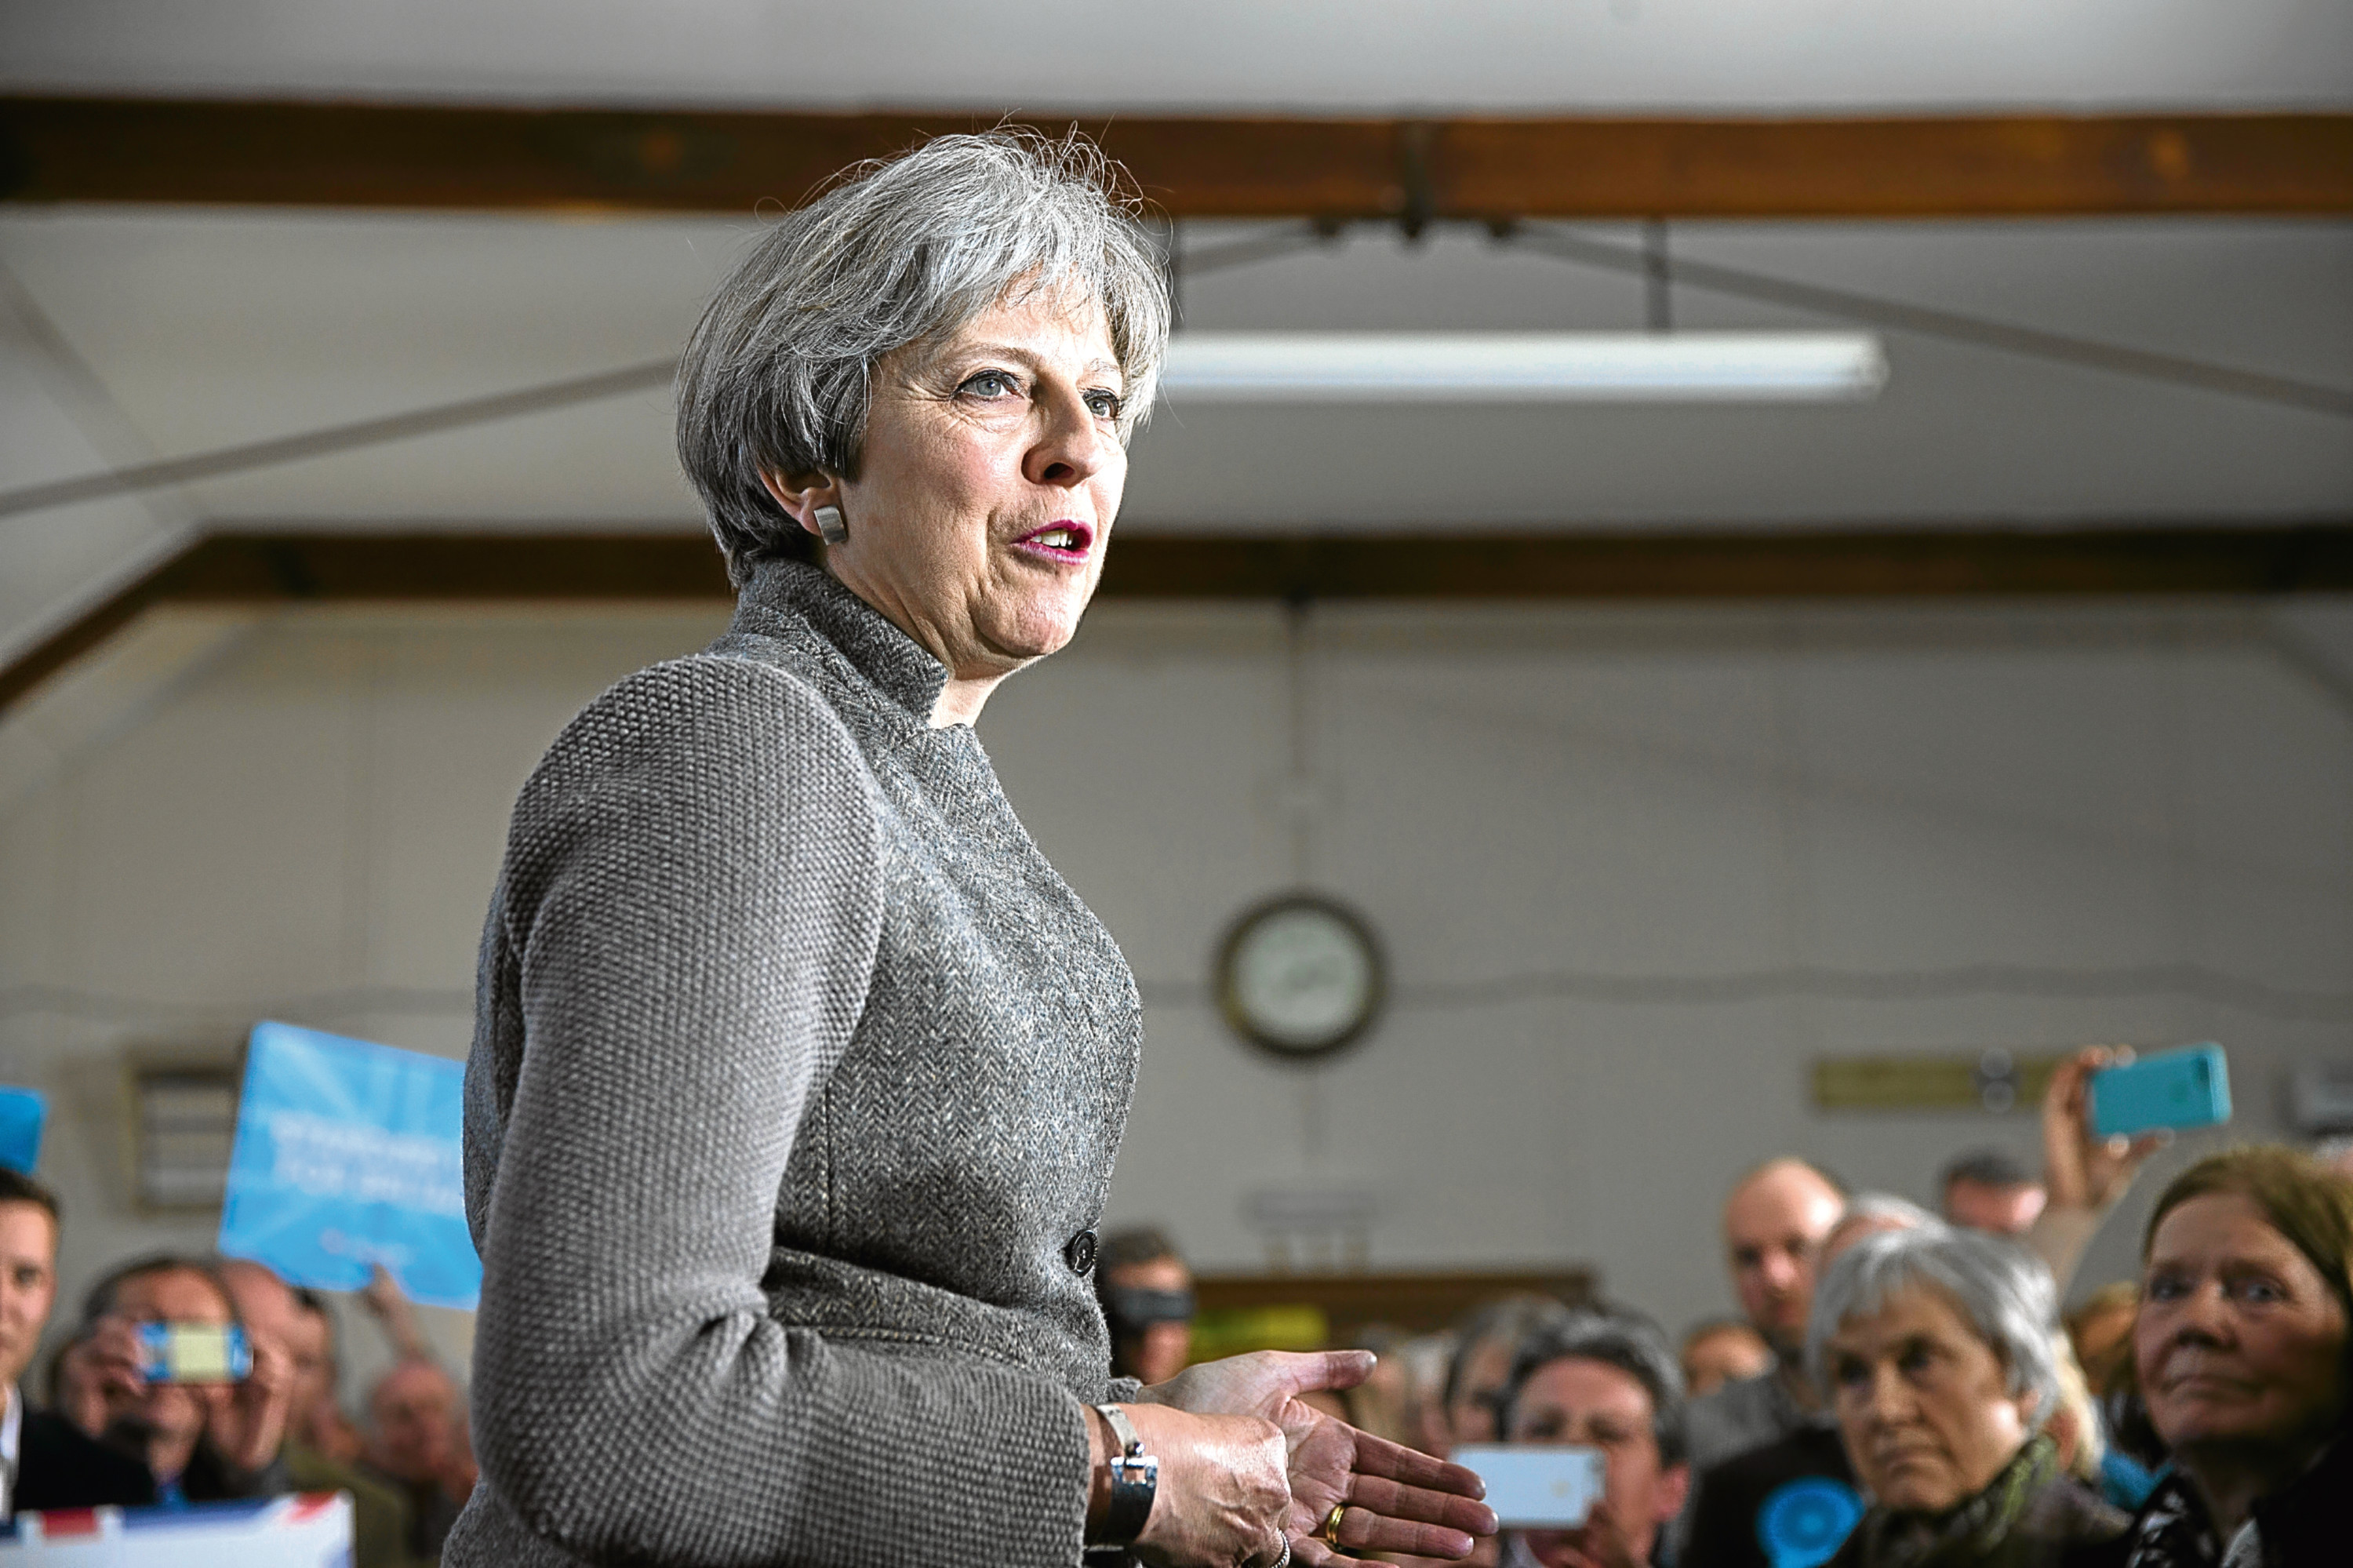 Prime Minister Theresa May makes her first campaign visit to Scotland ahead of June's snap general election. (Ross Johnston/Newsline Media)